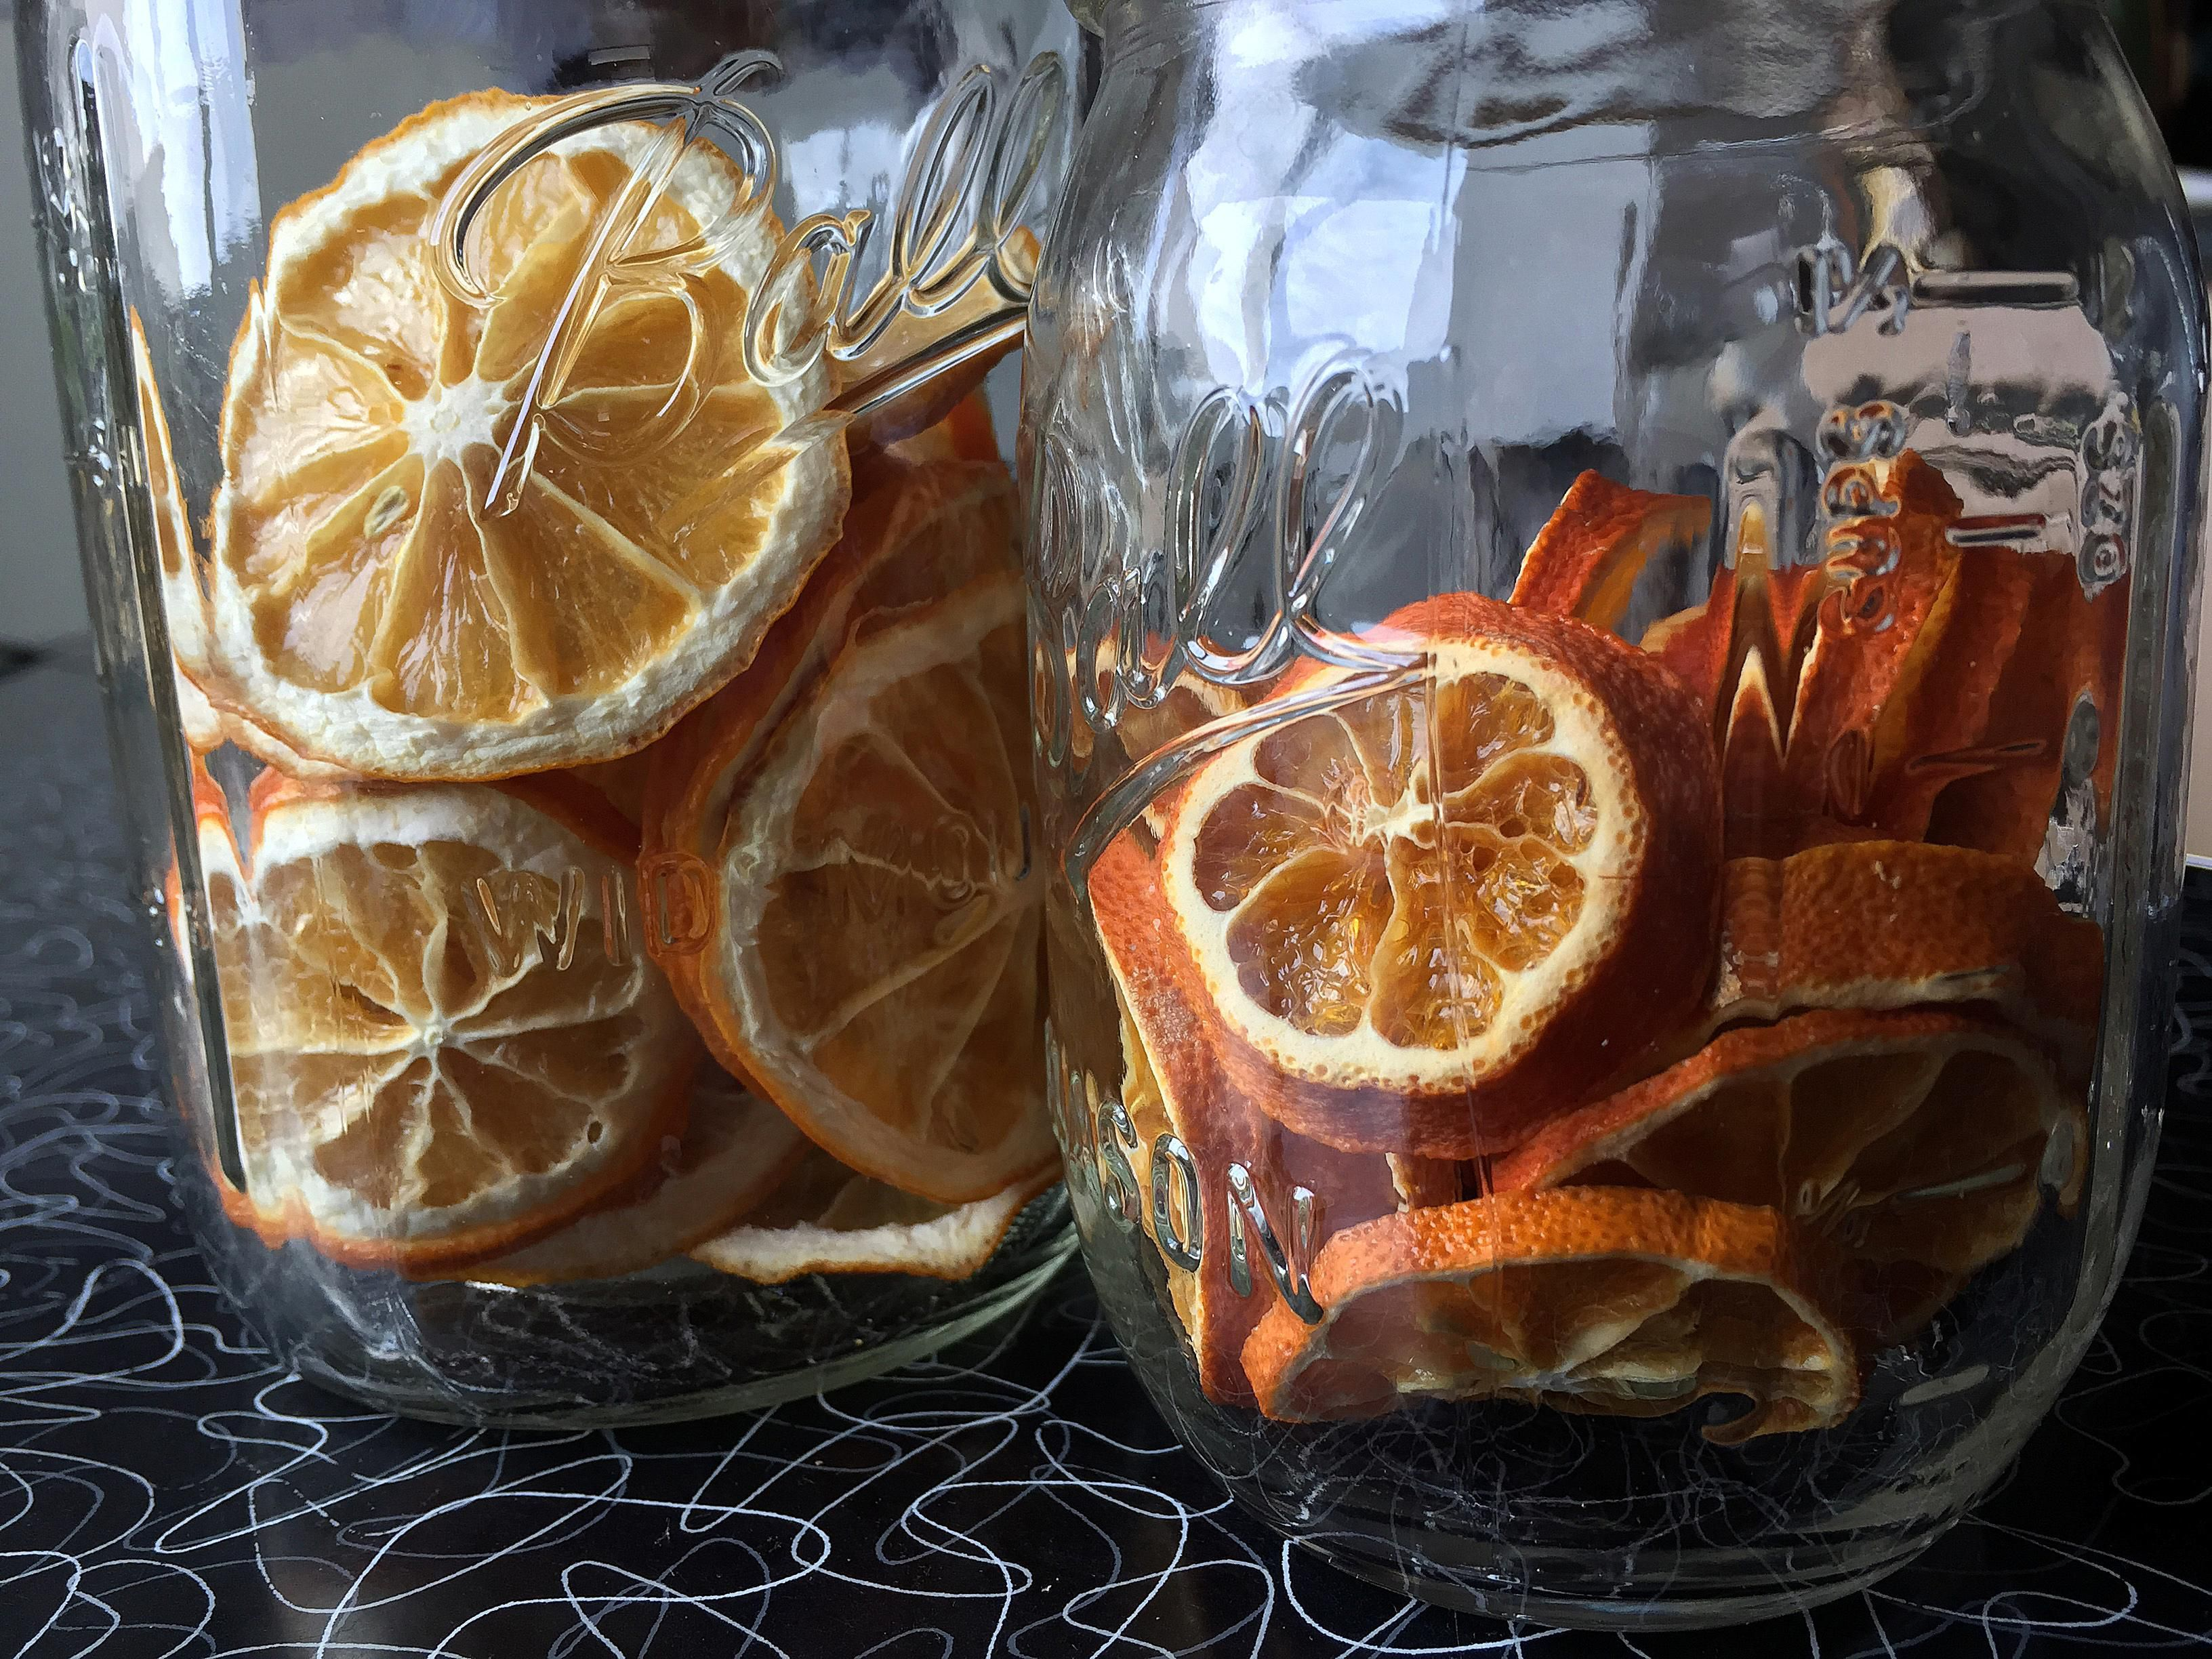 Dry slices of lemon orange and other citrus fruits at